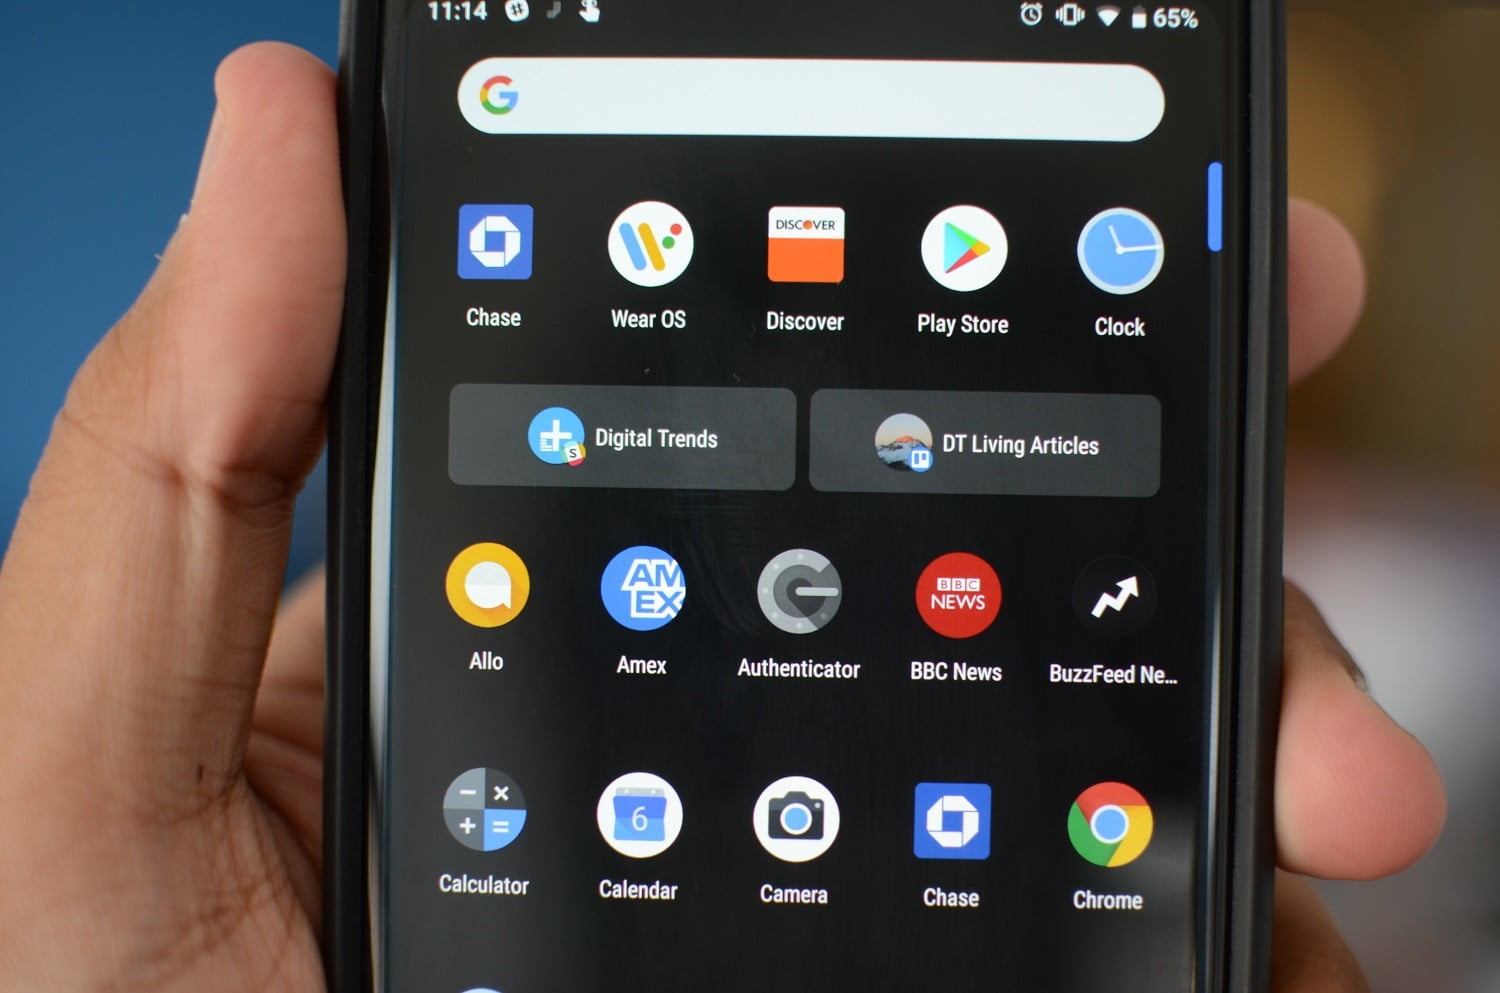 The best and worst features of Android 9.0 Pie